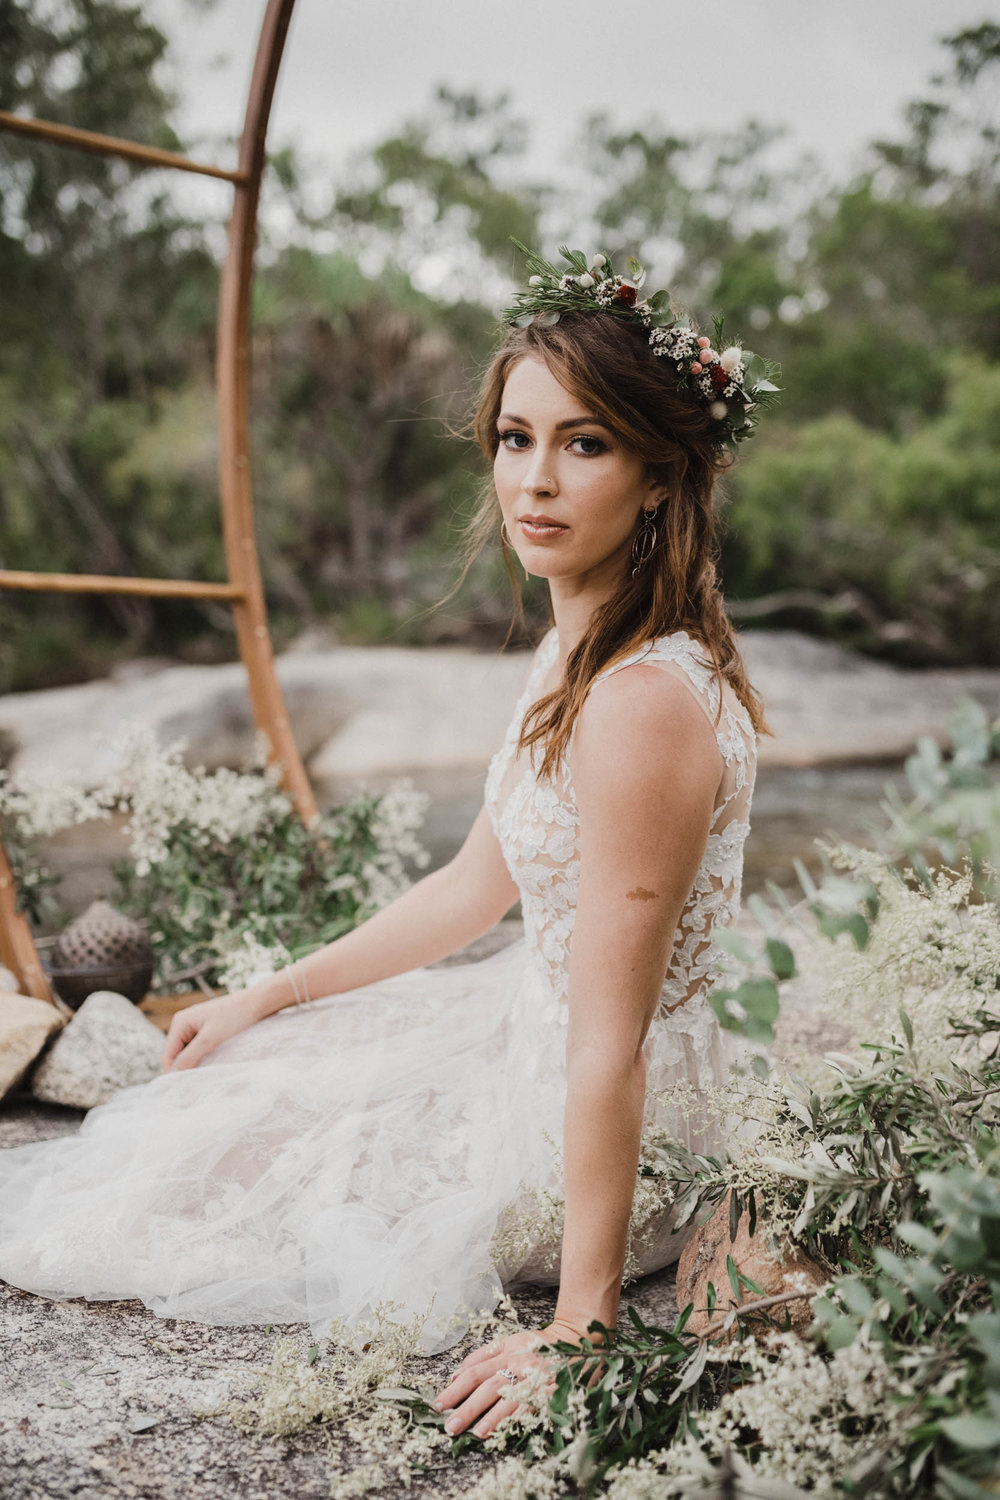 The Raw Photographer - Cairns Wedding Photographer - Brides Styled Shoot - Dress Jonovia Bridal - Hair Makeup Ideas-26.jpg